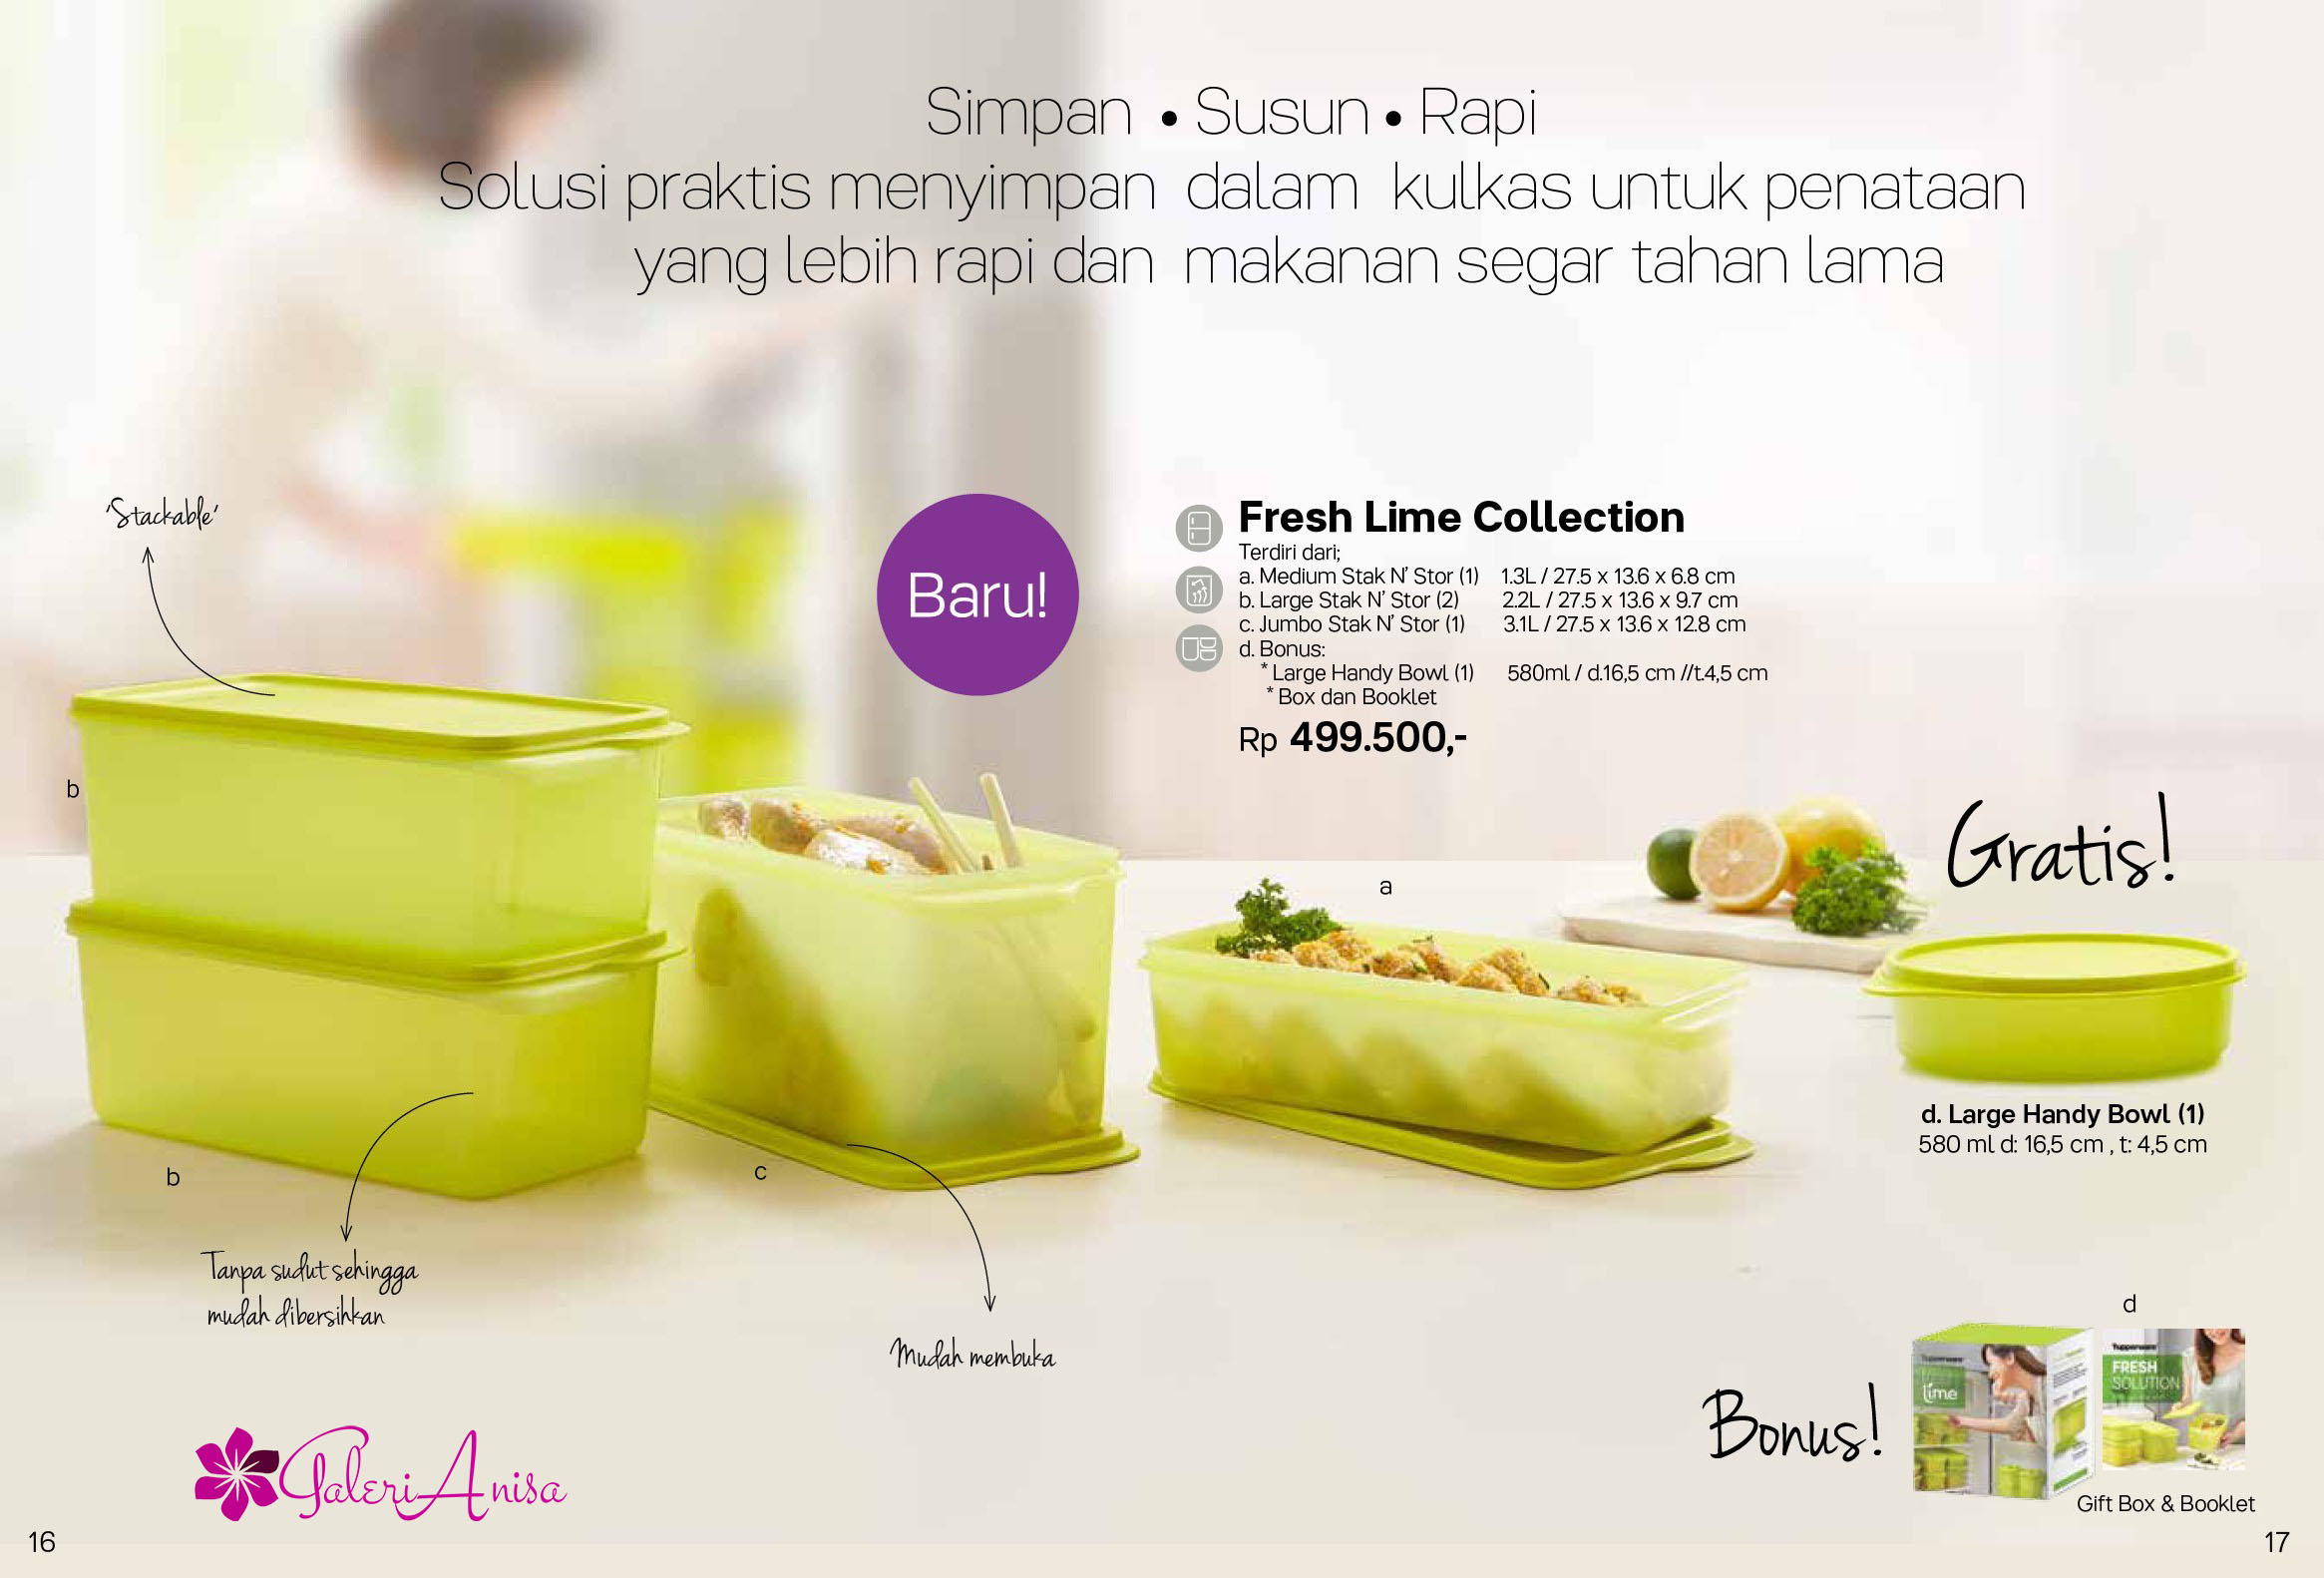 Fresh Lime Collection Tupperware Promo April 2017 9